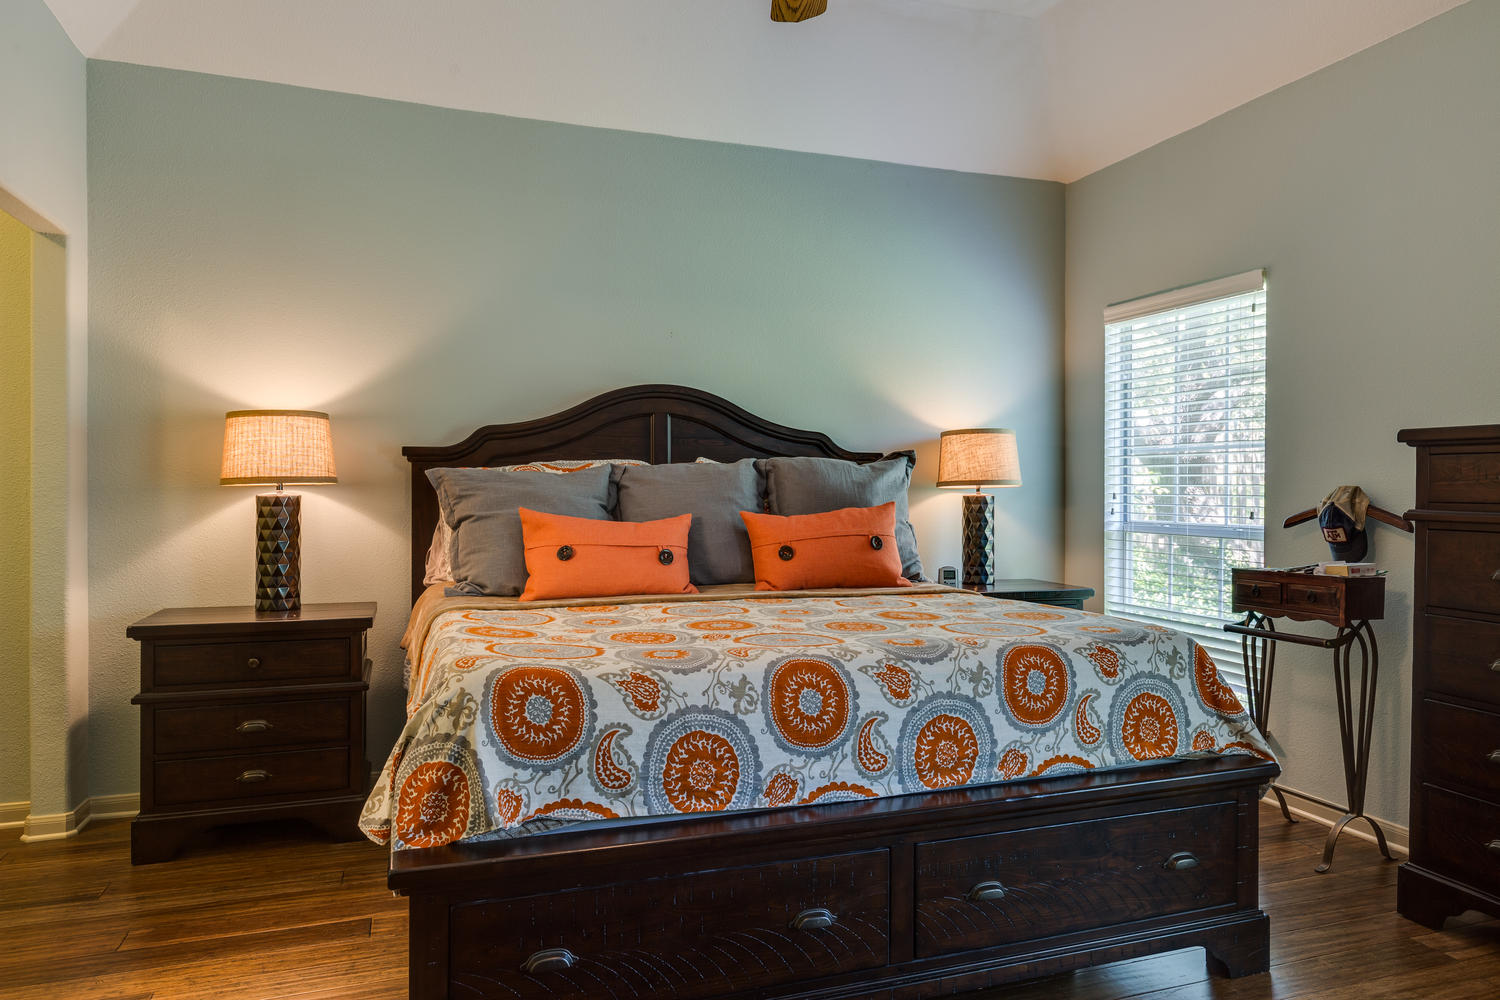 11 Birnam Wood San Antonio TX-large-025-27-Master Bedroom-1500x1000-72dpi copy.jpg